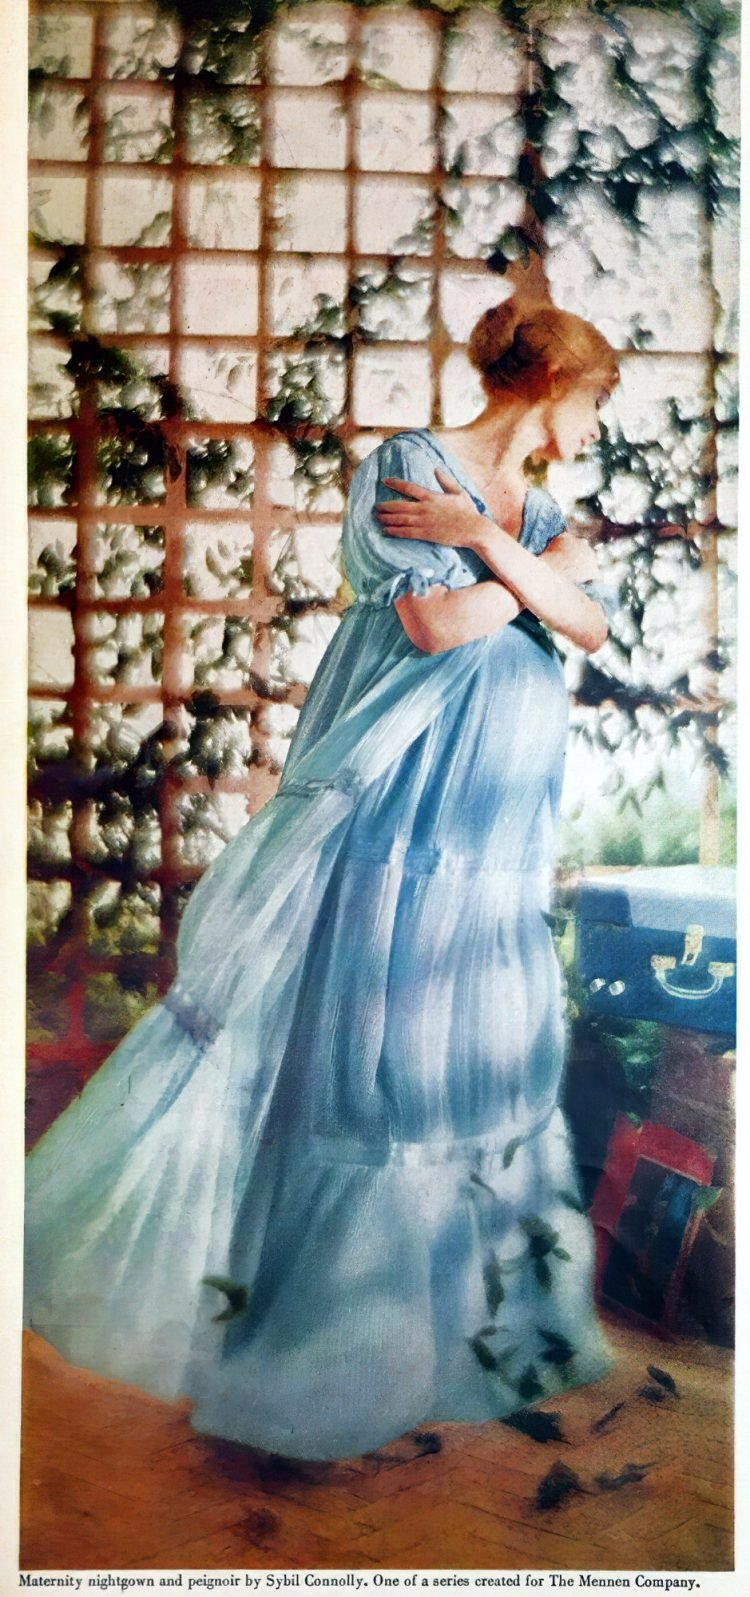 Maternity nightgown and peignoir by Sybil Connolly - Mennen 1950s-gigapixel-width-1800px